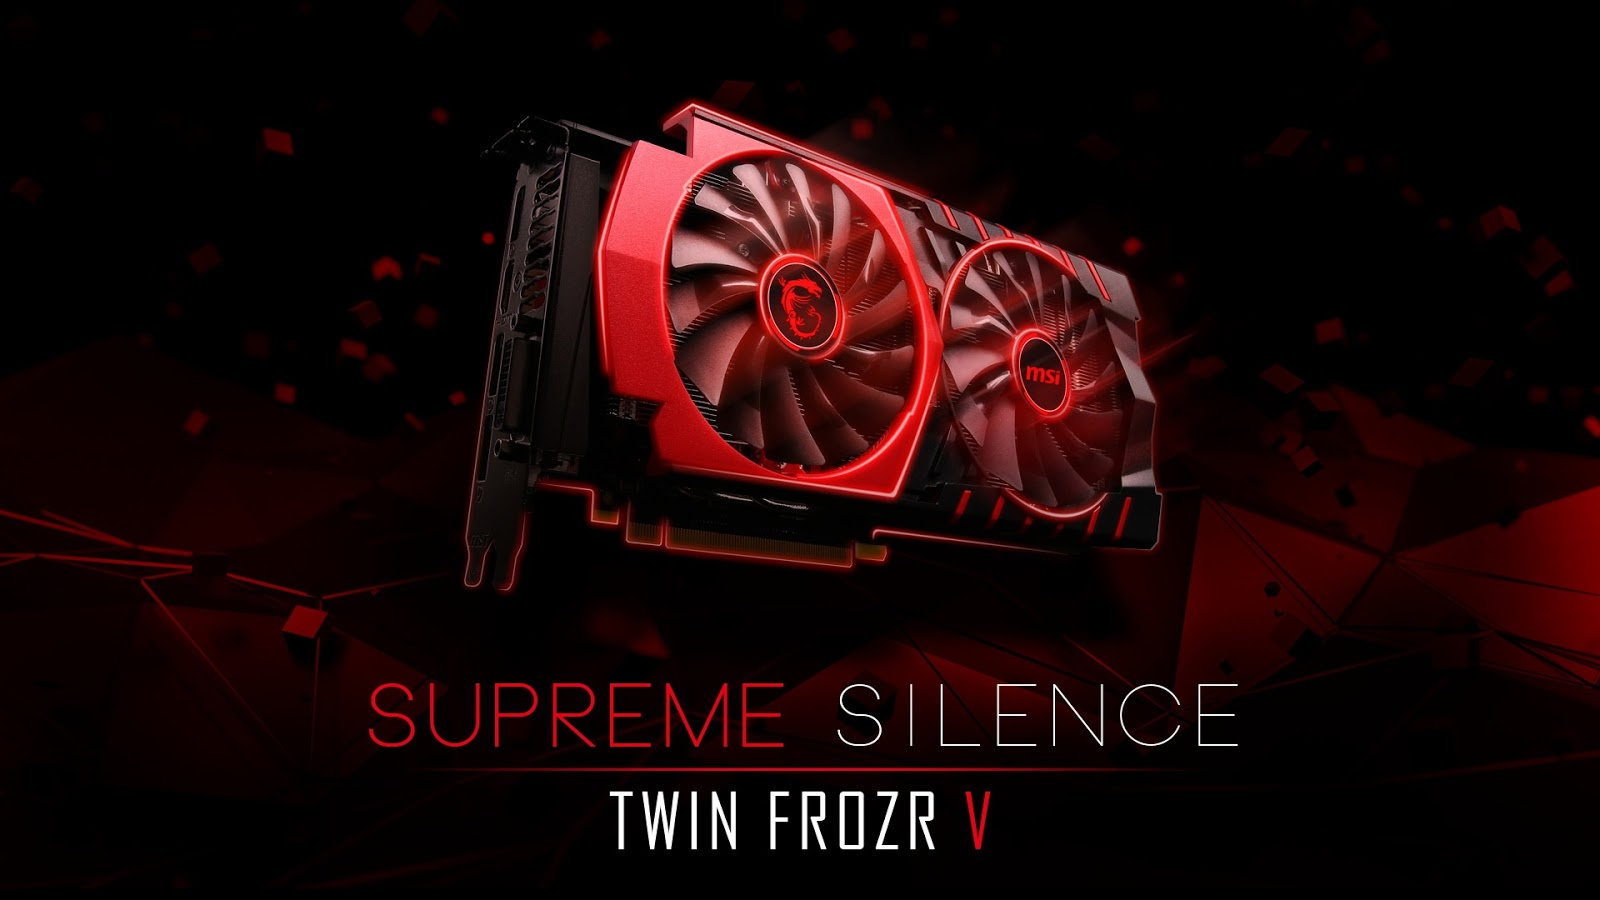 Okak Msi Twin Frozr Wallpaper Without Msi Logo On Sides Or